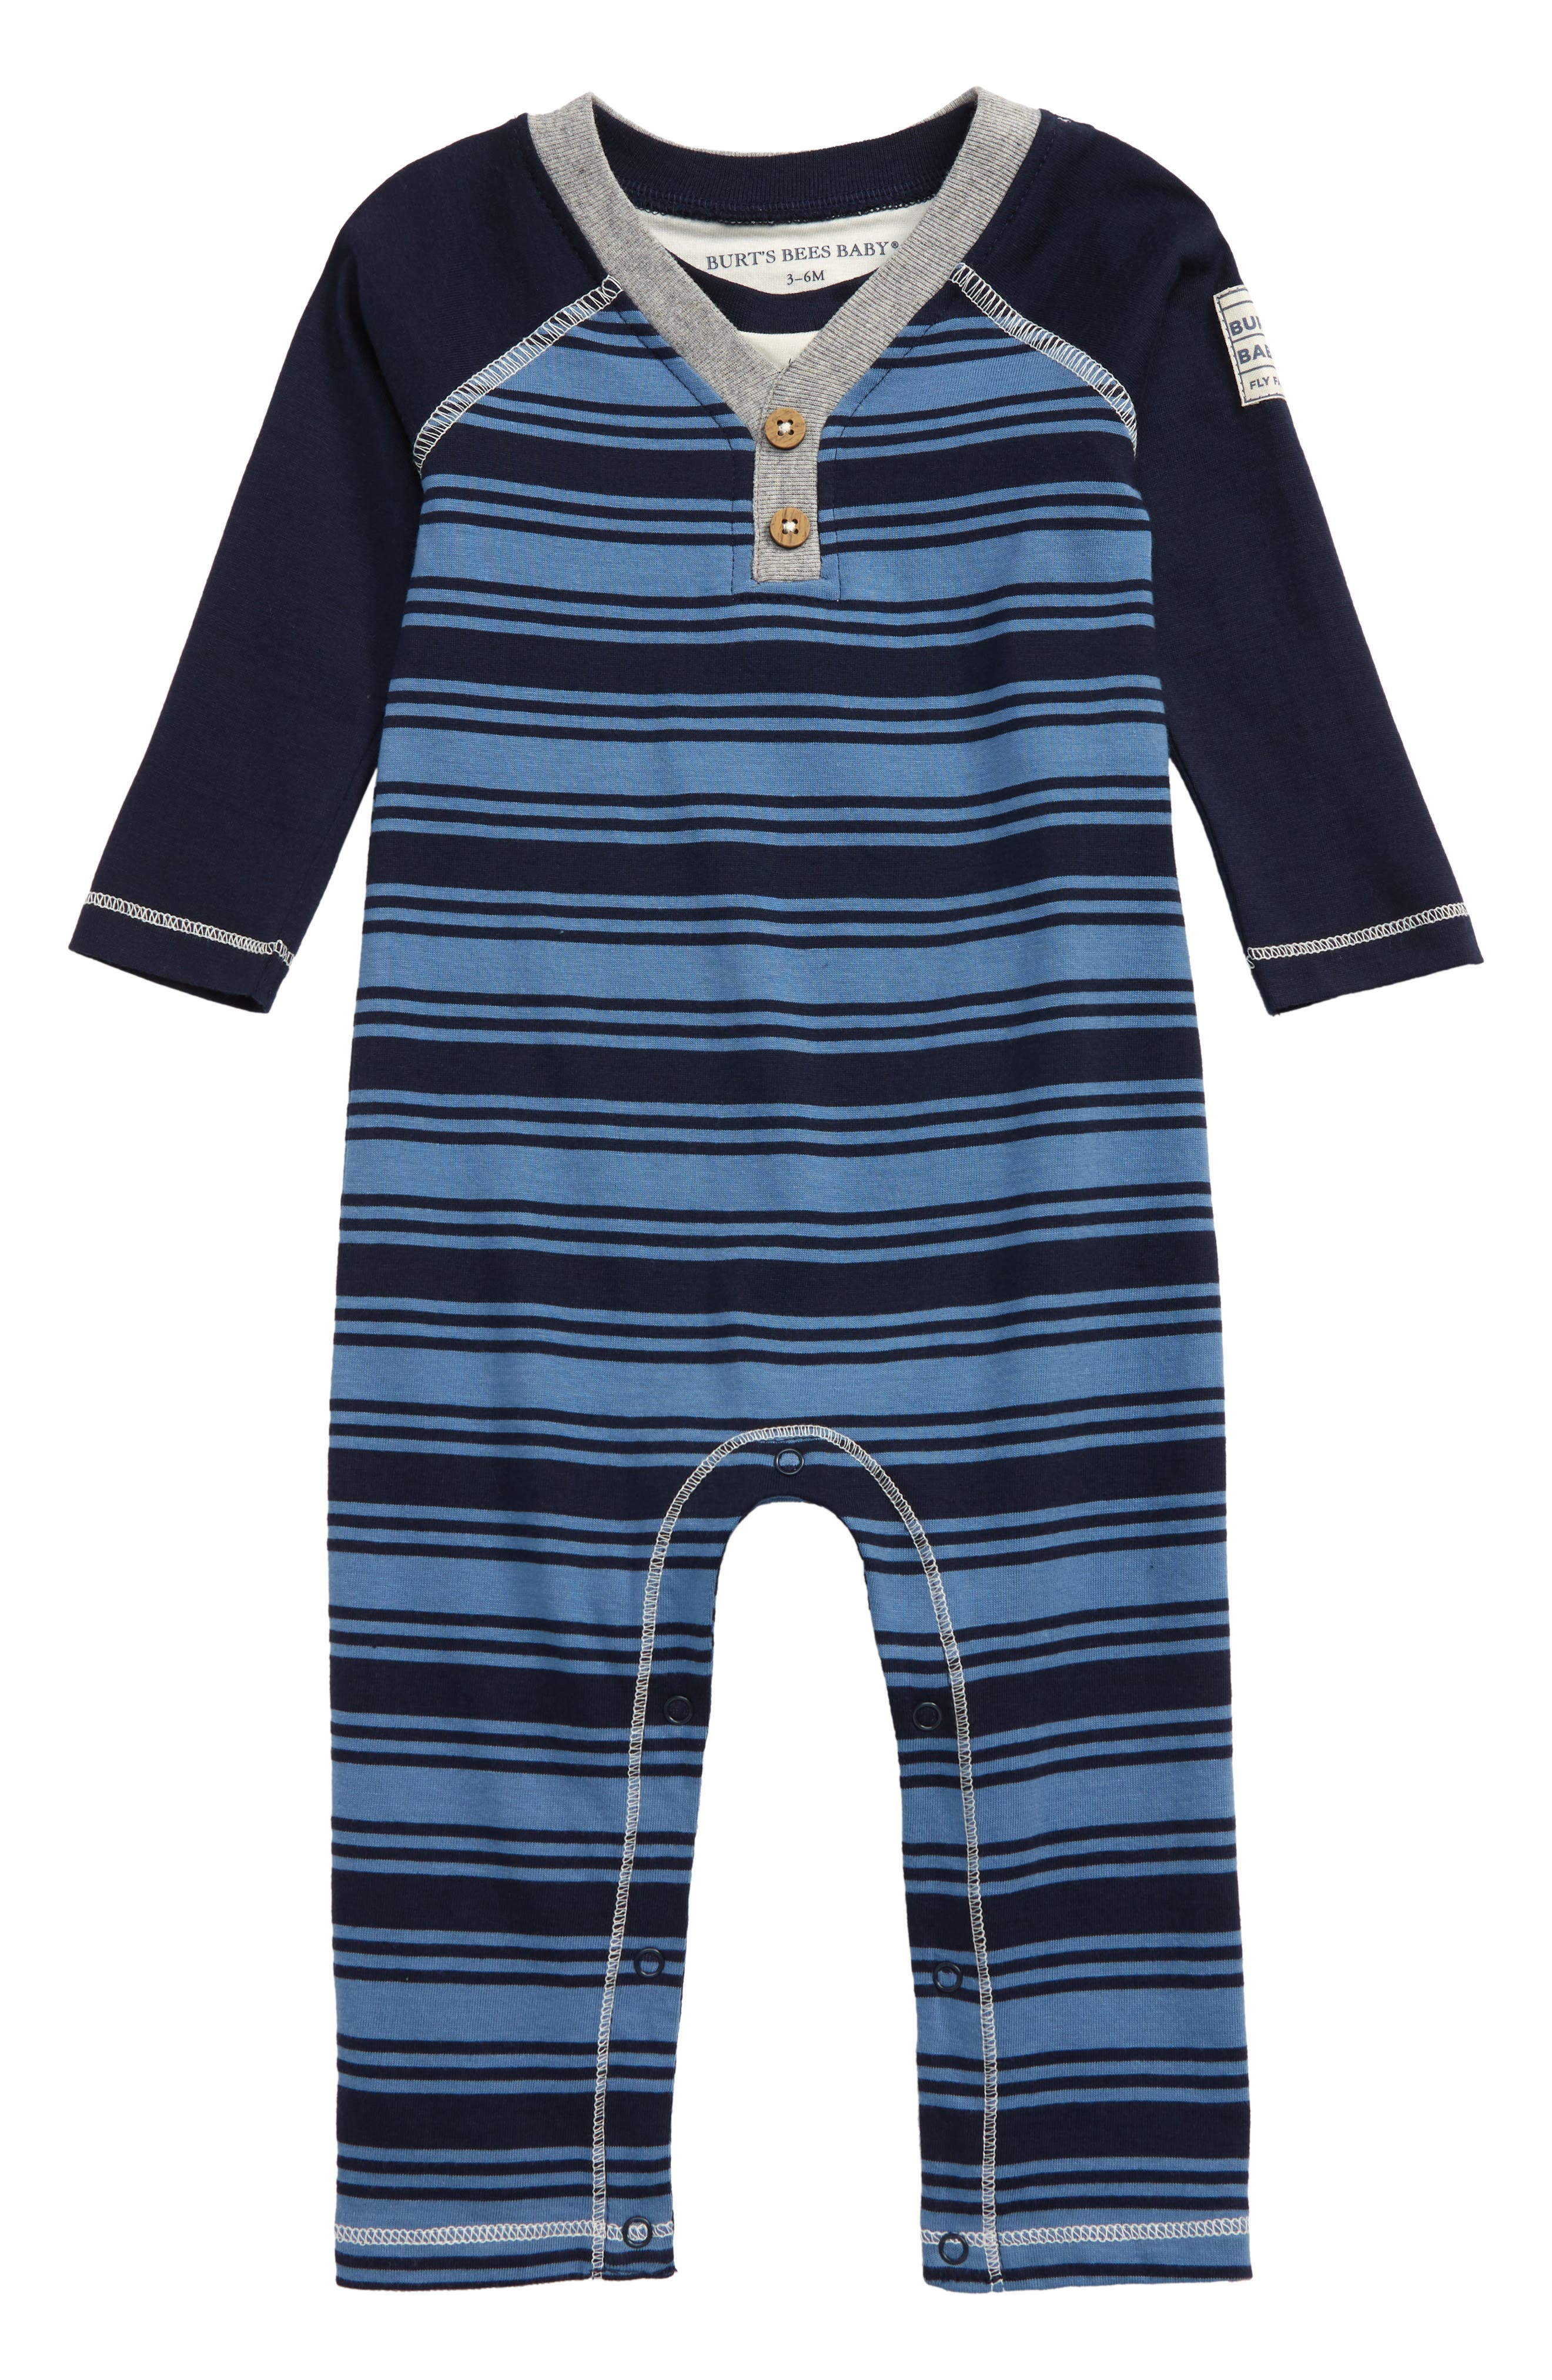 26b2508ccf5 Burt's Bees Baby Baby Clothing | Nordstrom